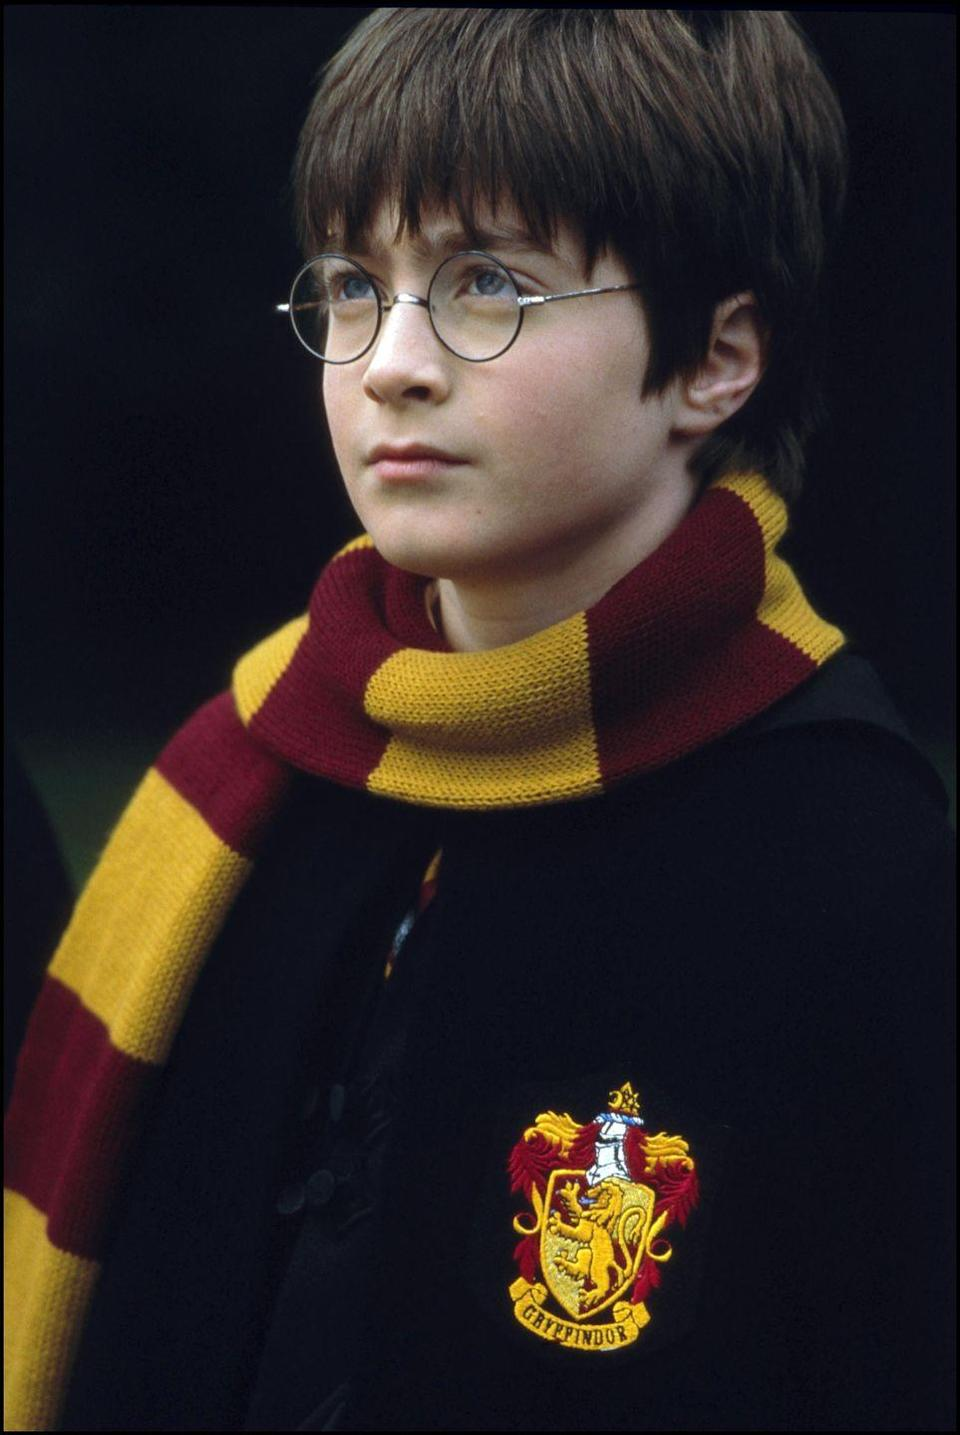 <p>Time to break out your Gryffindor gear, black cape, and wand. <em>Harry Potter and the Sorcerer's Stone</em>, the first movie in the wildly popular series, was released in 2001, becoming a source of Halloween costume inspiration for years to come.</p>